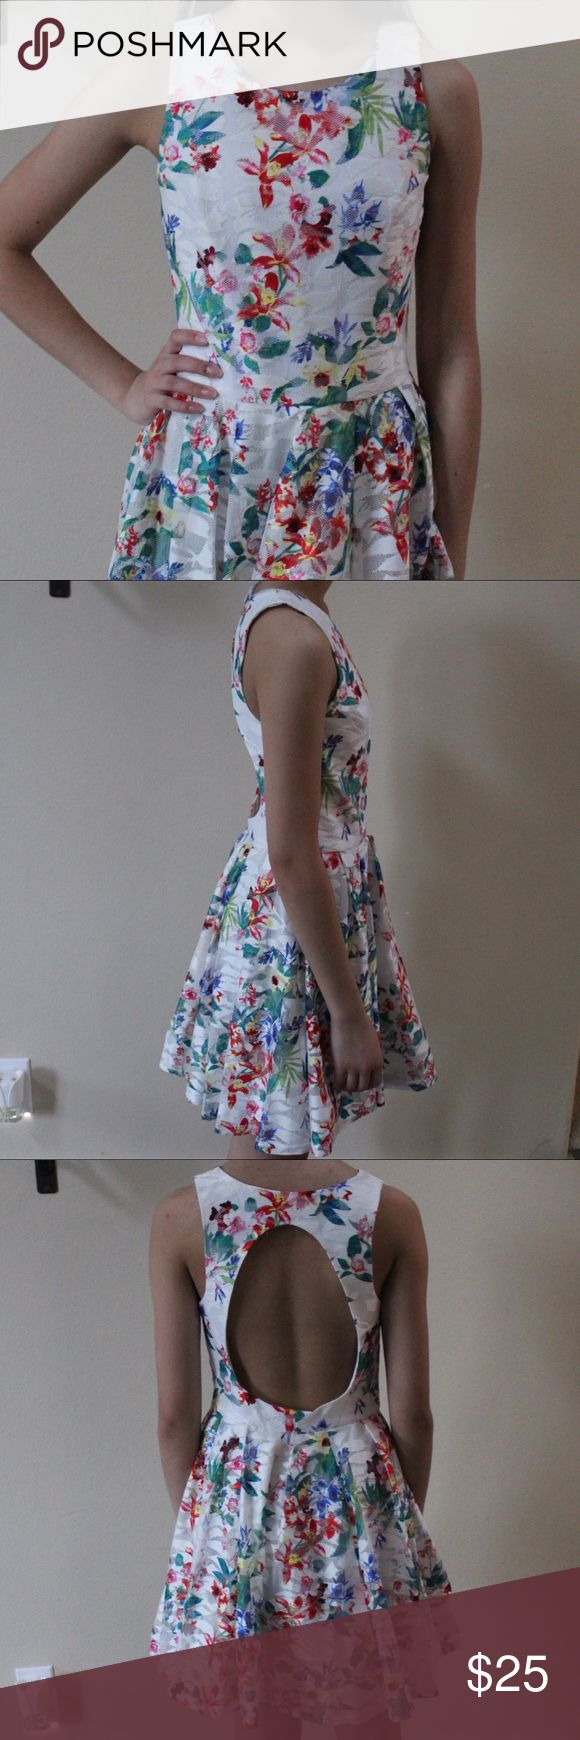 "NWT! Necessary Object fit and flare dress 👗 Brand new! Perfect day dress for pageant appearances, or casual wear, Easter, Sunday best, brunch, etc. Junior M (fits like a 3/5). Model in photo is a 1/3 and 5'"". the dress is a bit big for her on top. 💐🌷💐 Make me an offer! From a clean, smoke and pet hair free home. Necessary Objects Dresses Mini"